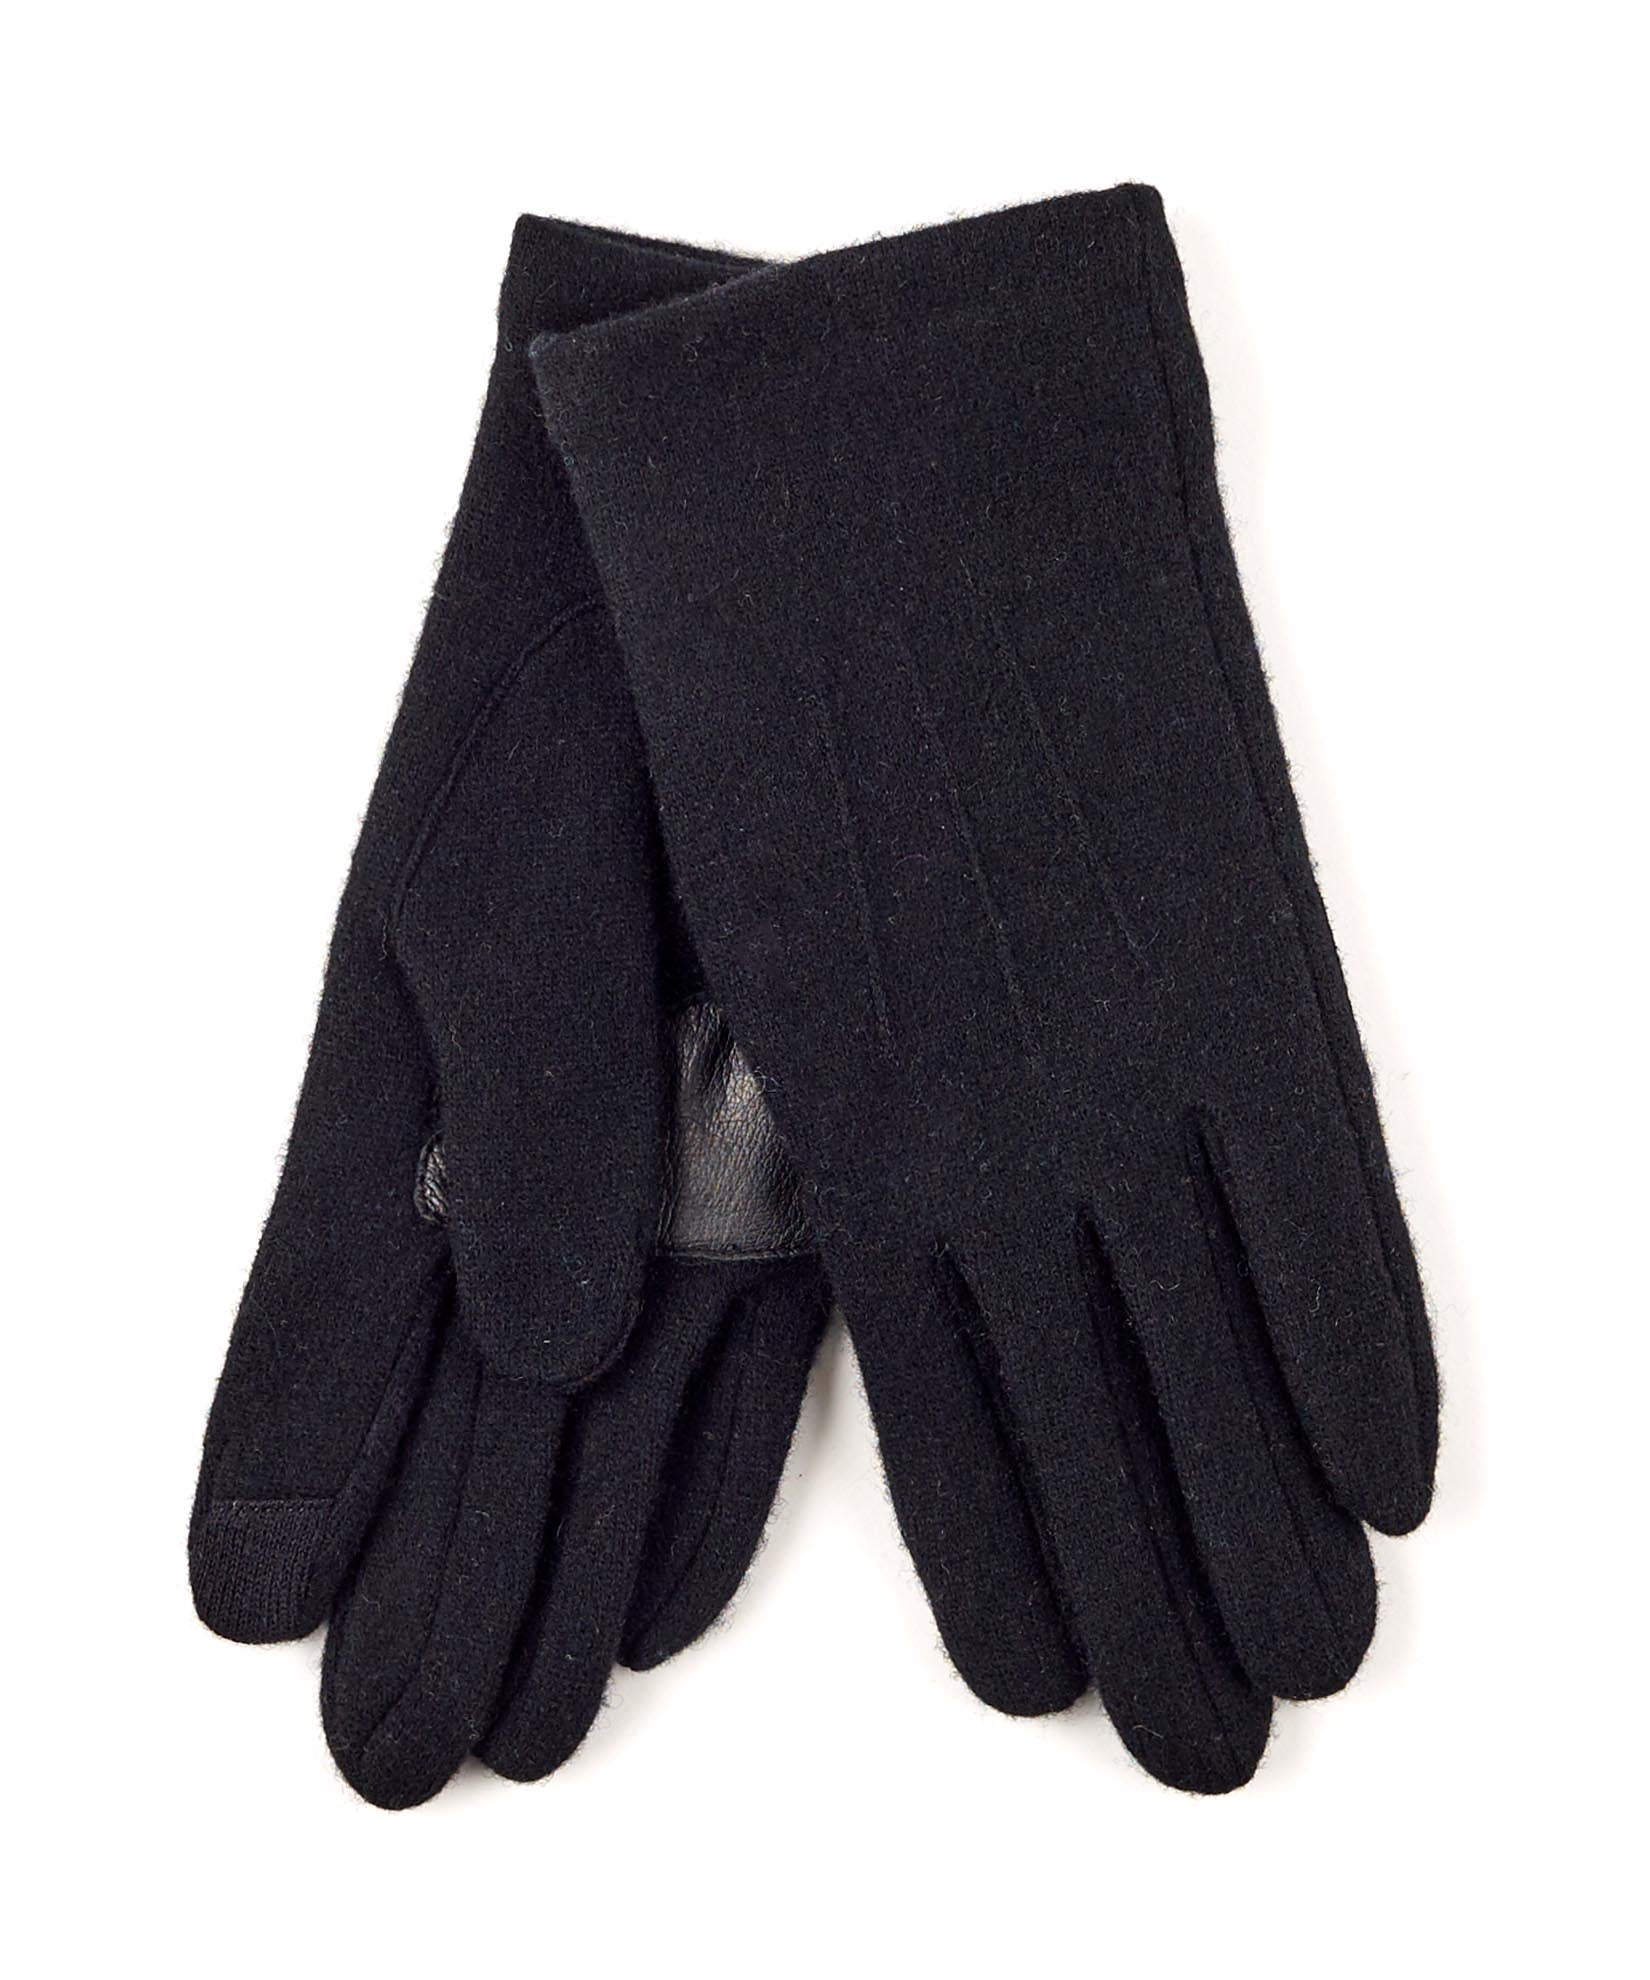 Black - Echo Touch Basic Glove